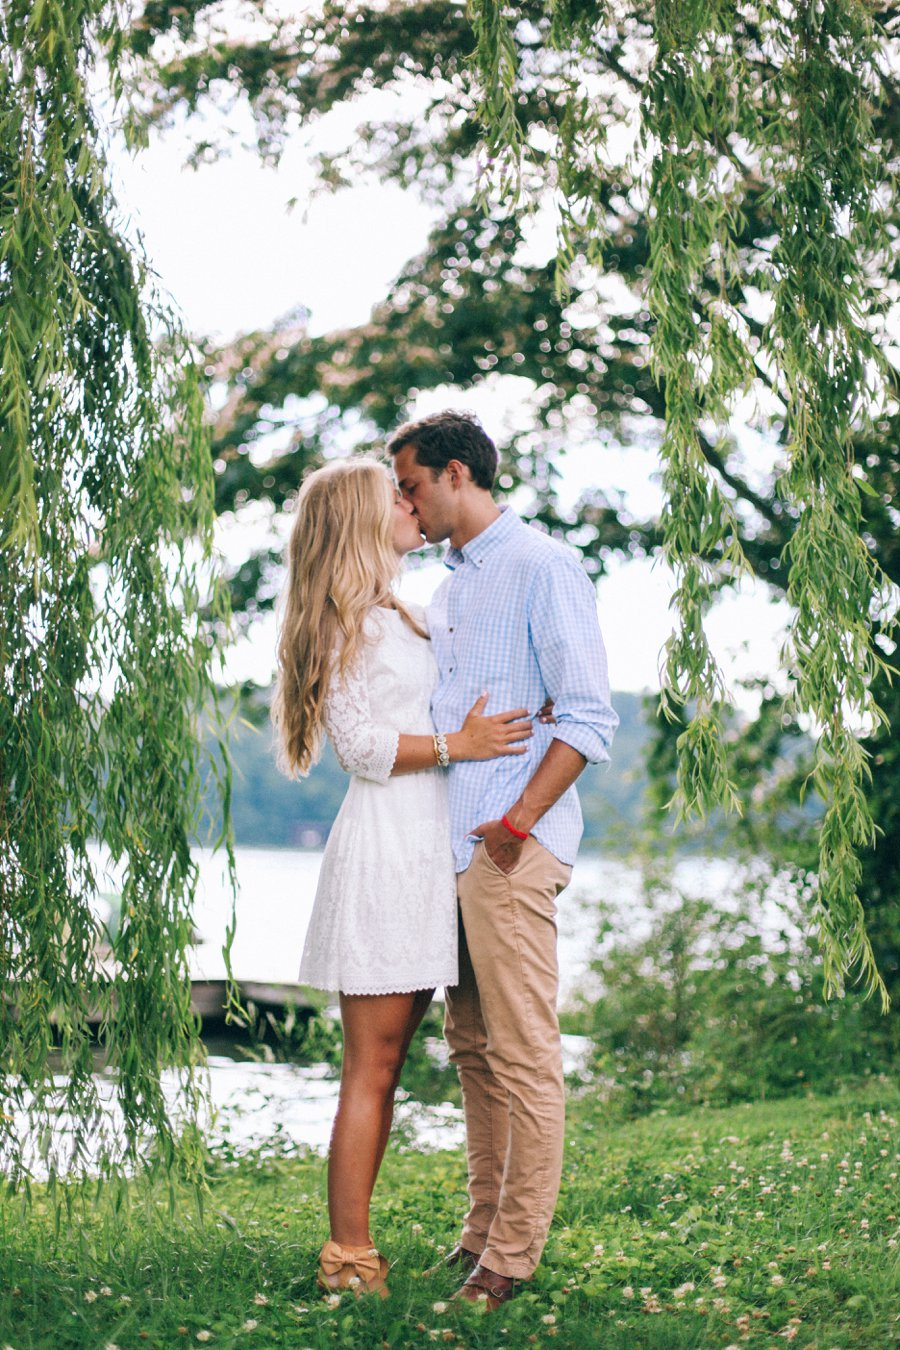 engagement-session-kiss-by-lake http://itgirlweddings.com/how-one-couple-nailed-their-engagement-session/